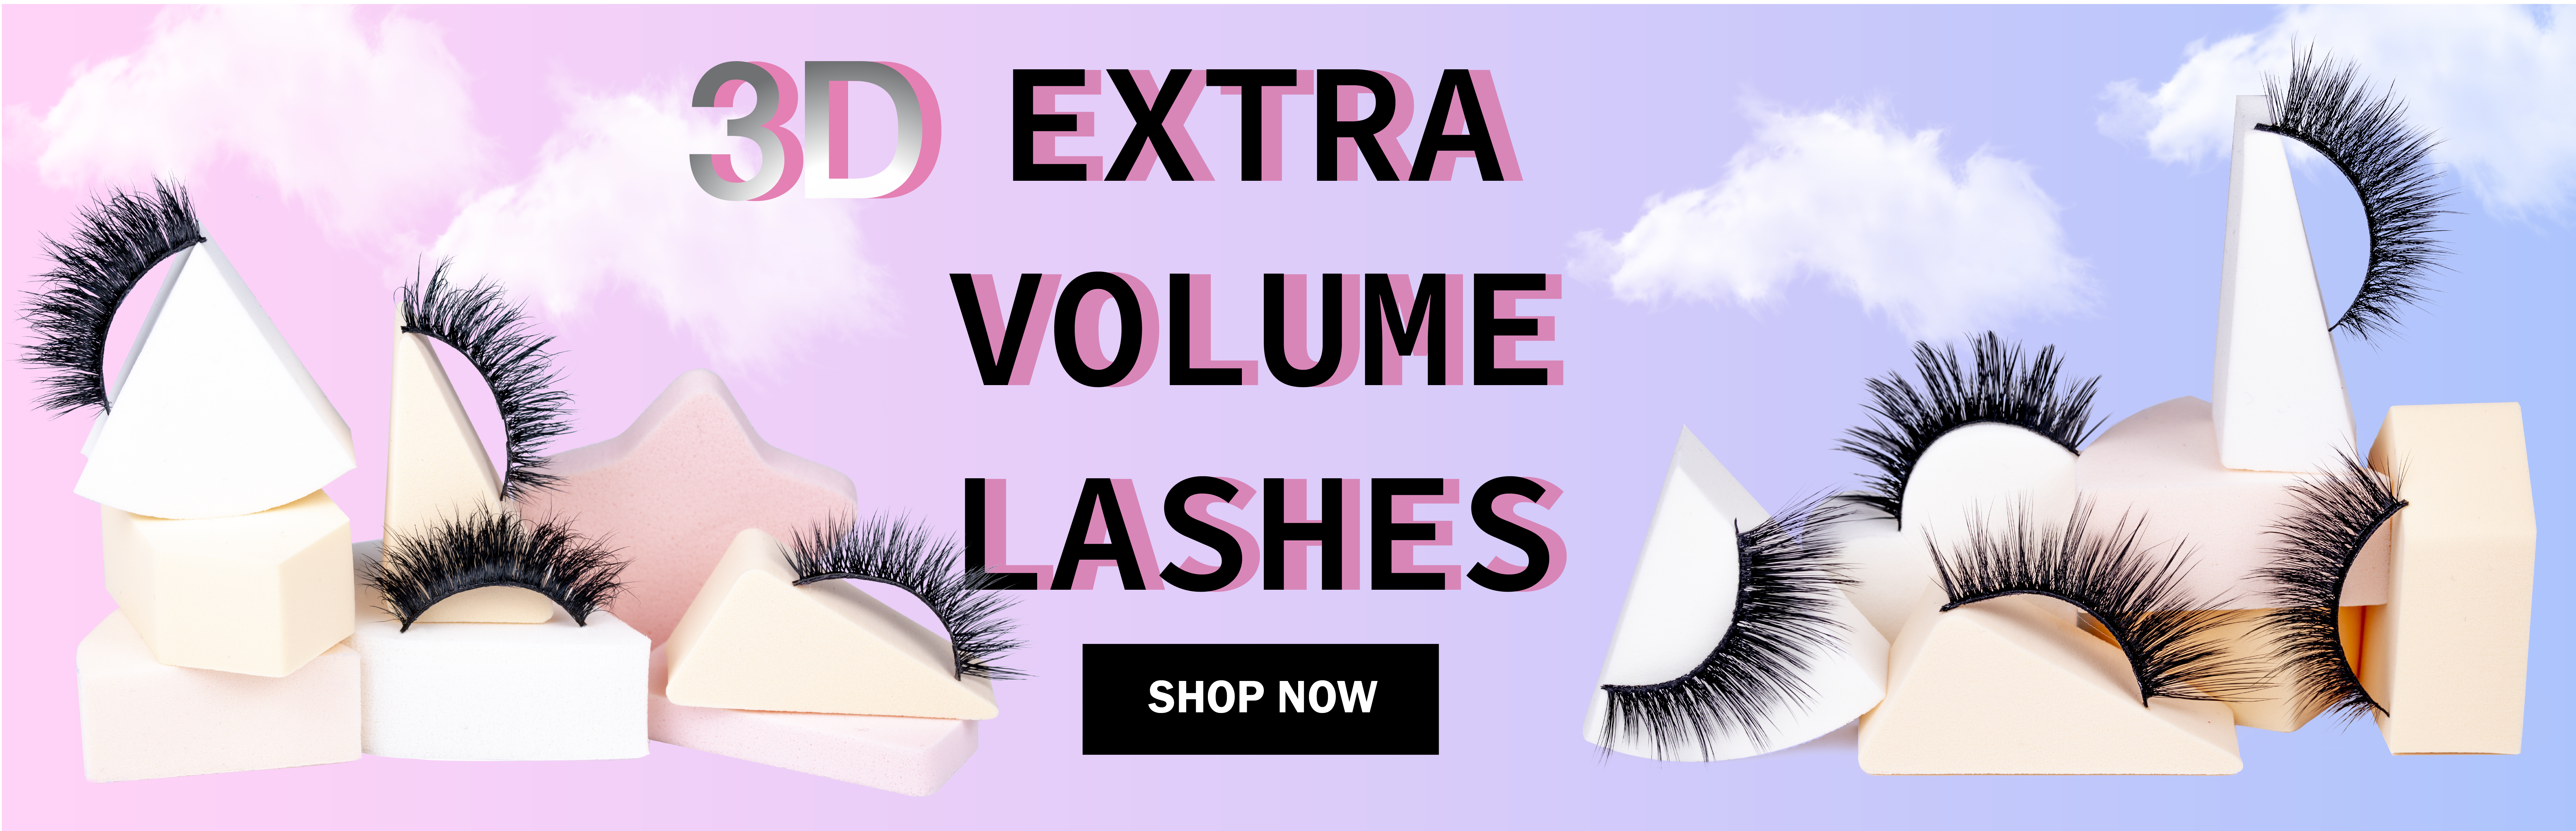 3D Extra Volume Lashes